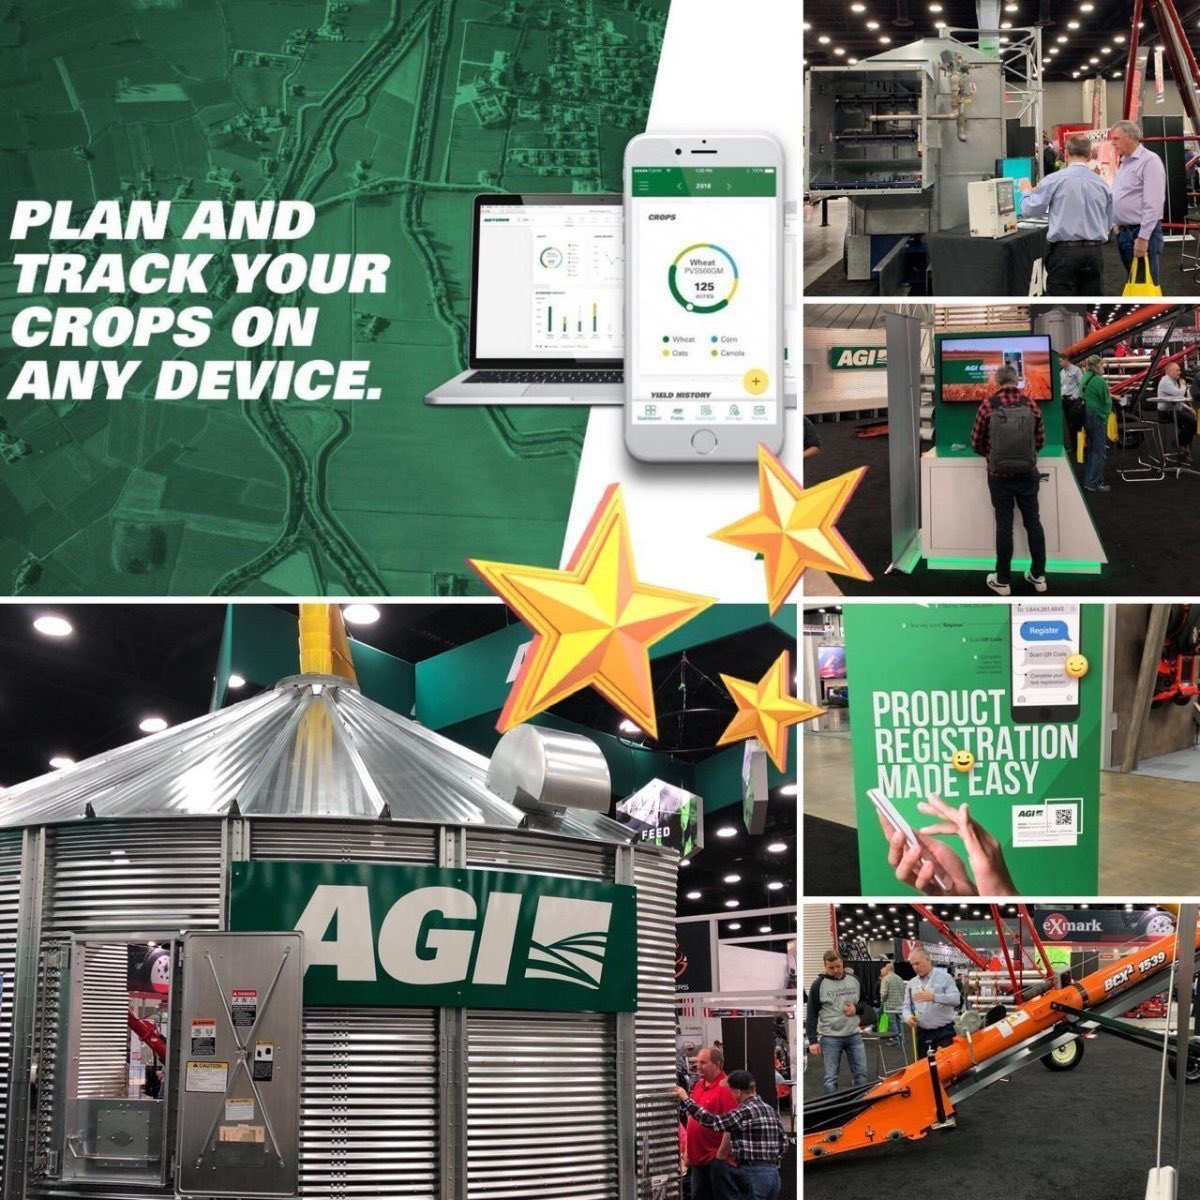 Our team at AGI hit the ground running at the start of 2019 and saw some of our hard work come to life this week at #IPPE2019 and #NFMS19.